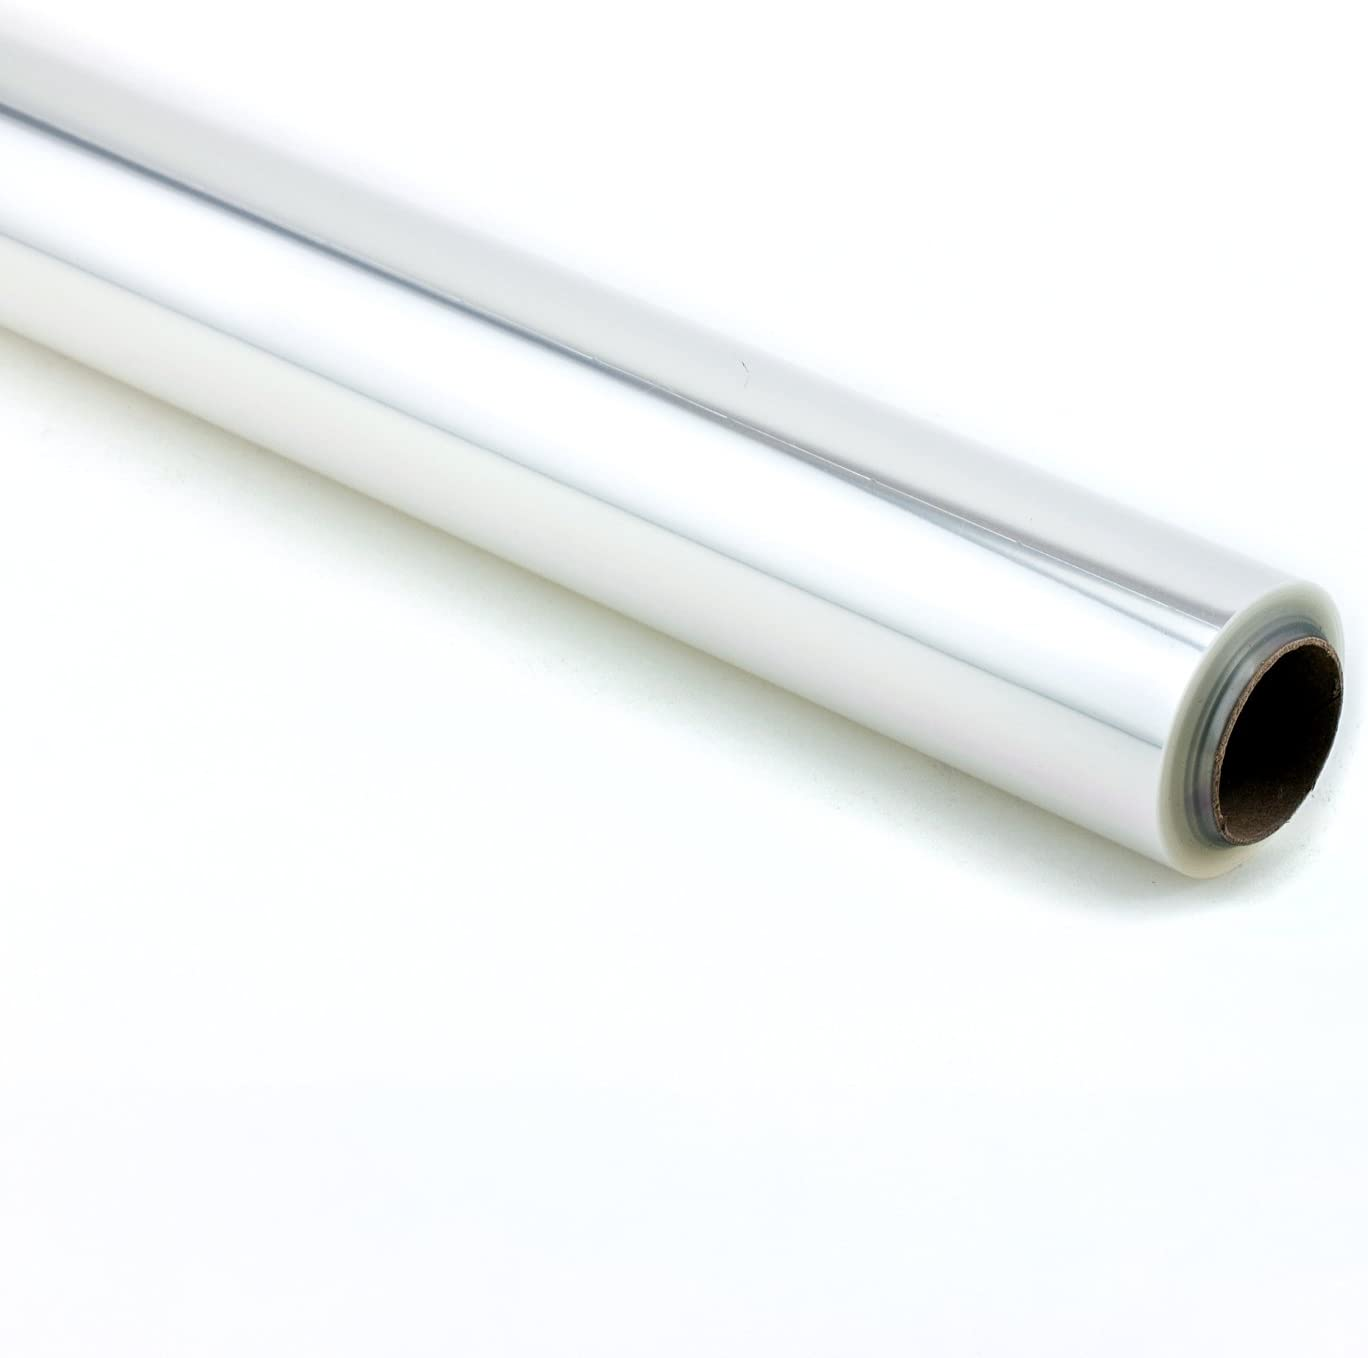 Tytroy Ranking TOP17 Gift Ranking TOP7 Wrapping Clear Cellophane Roll for Chr Baskets